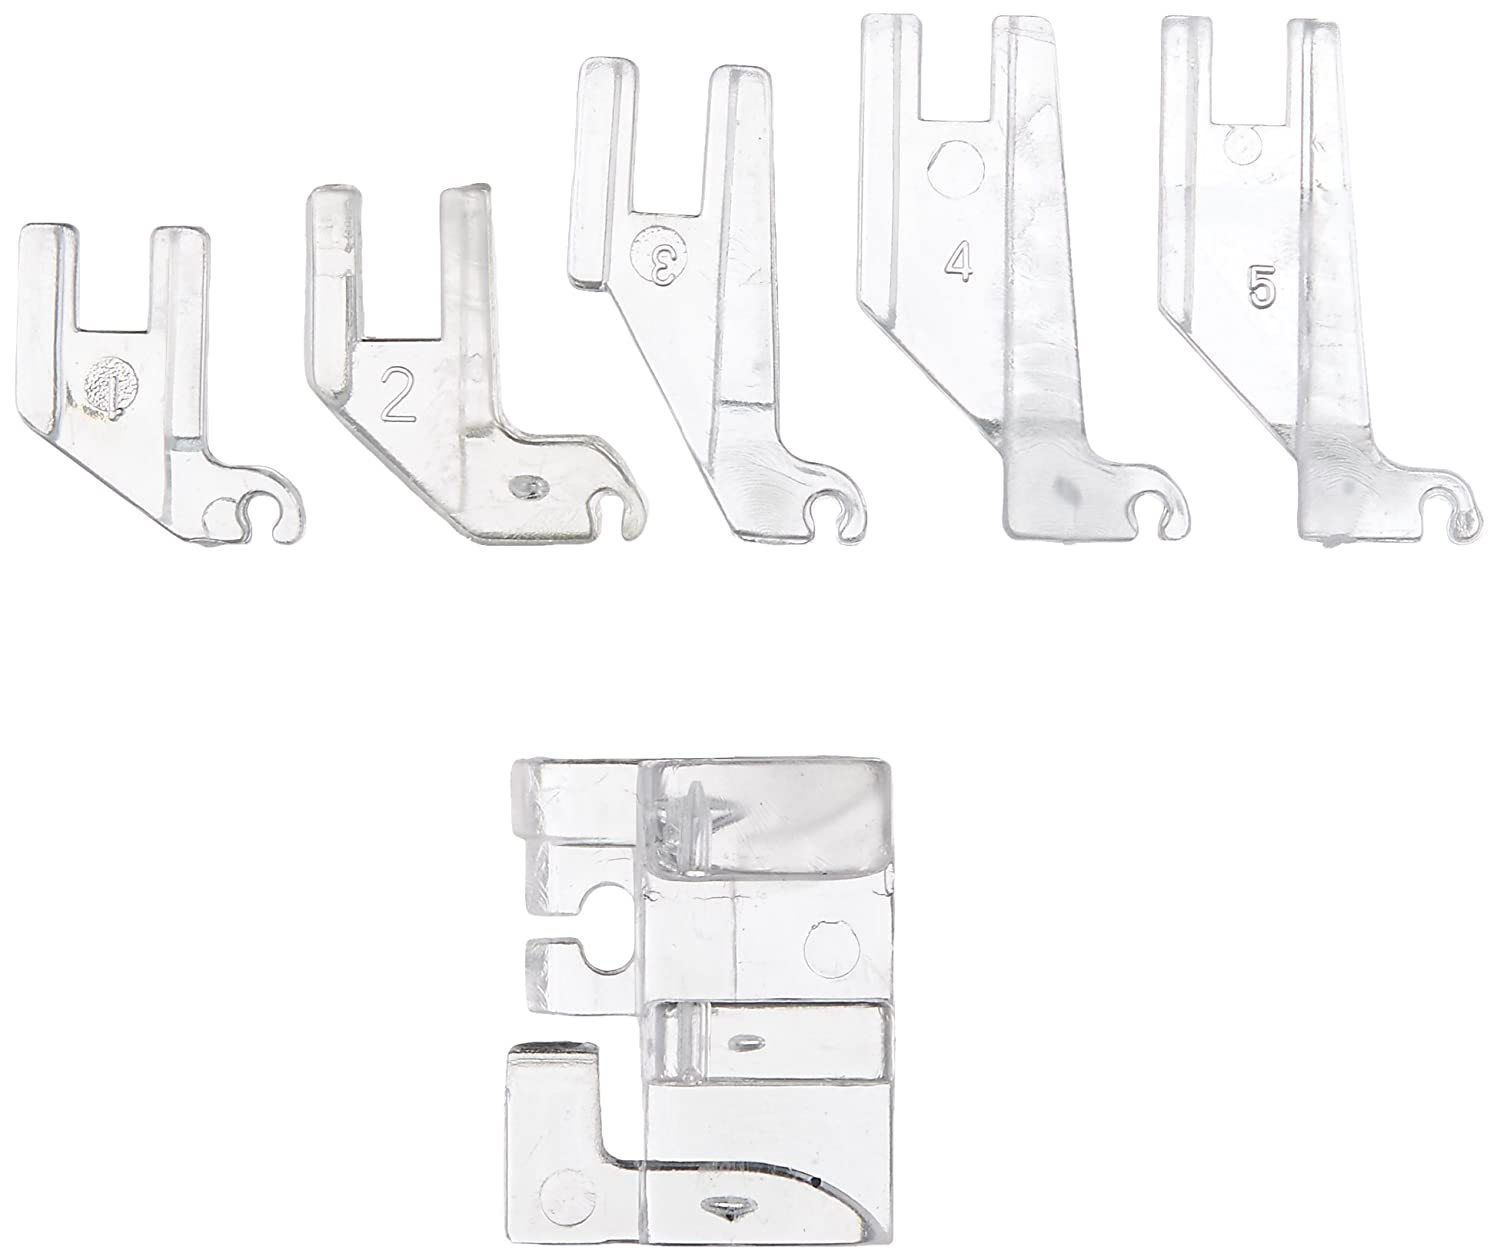 Curve Master Presser Foot - Invented by a Quilter for Quilters - Precise Guide for Scant 1/4 Curved & Straight Seams FBA_CM008-14